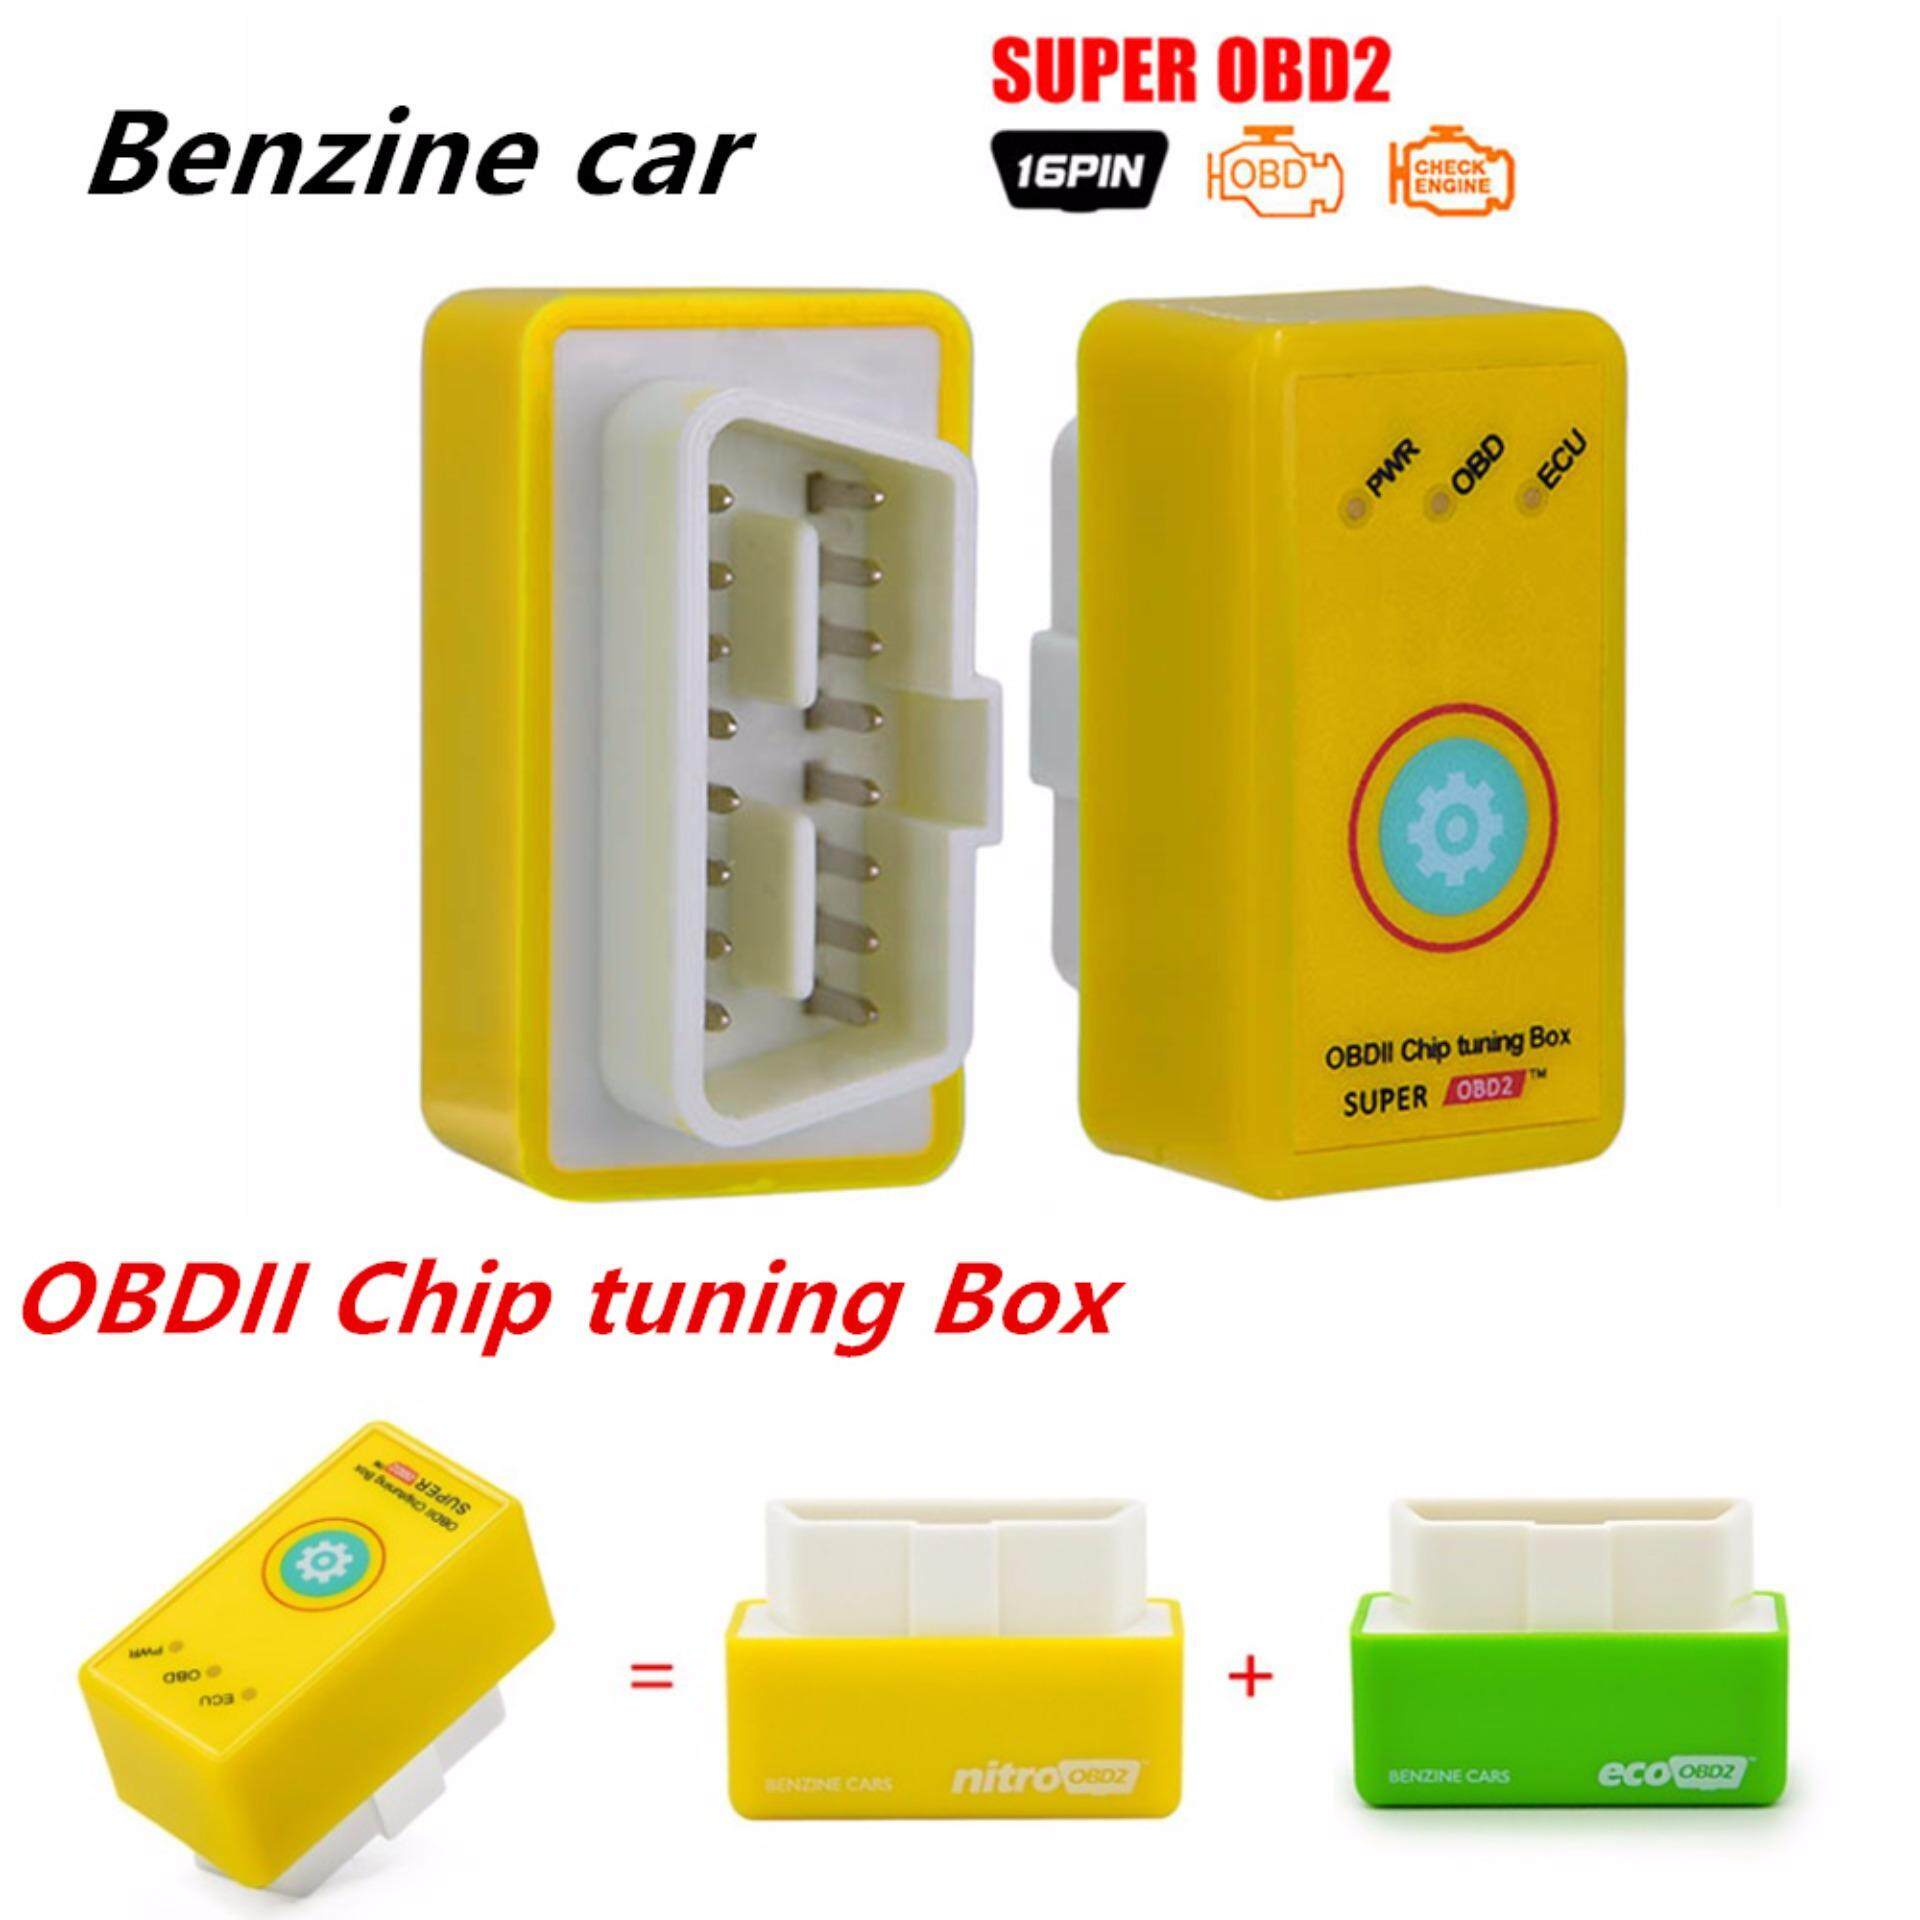 More Power More Torque NitroOBD2 Upgrade Reset Function Super OBD2 ECU Chip  Tuning Yellow Benzine Better Than Nitro OBD2 (Yellow)[Petrol Version]